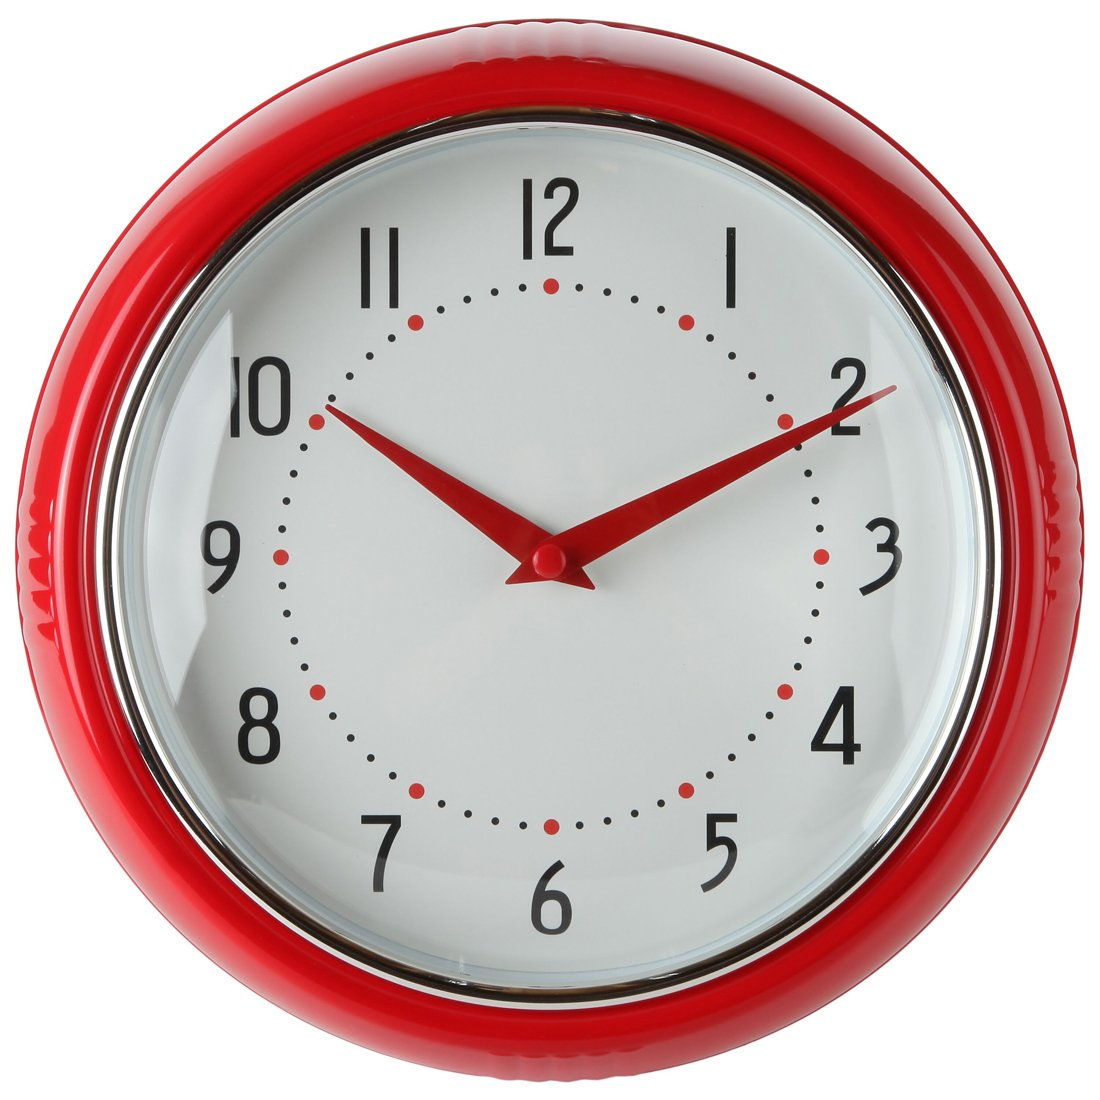 Lily's Home Retro Kitchen Wall Clock, Large Dial Quartz